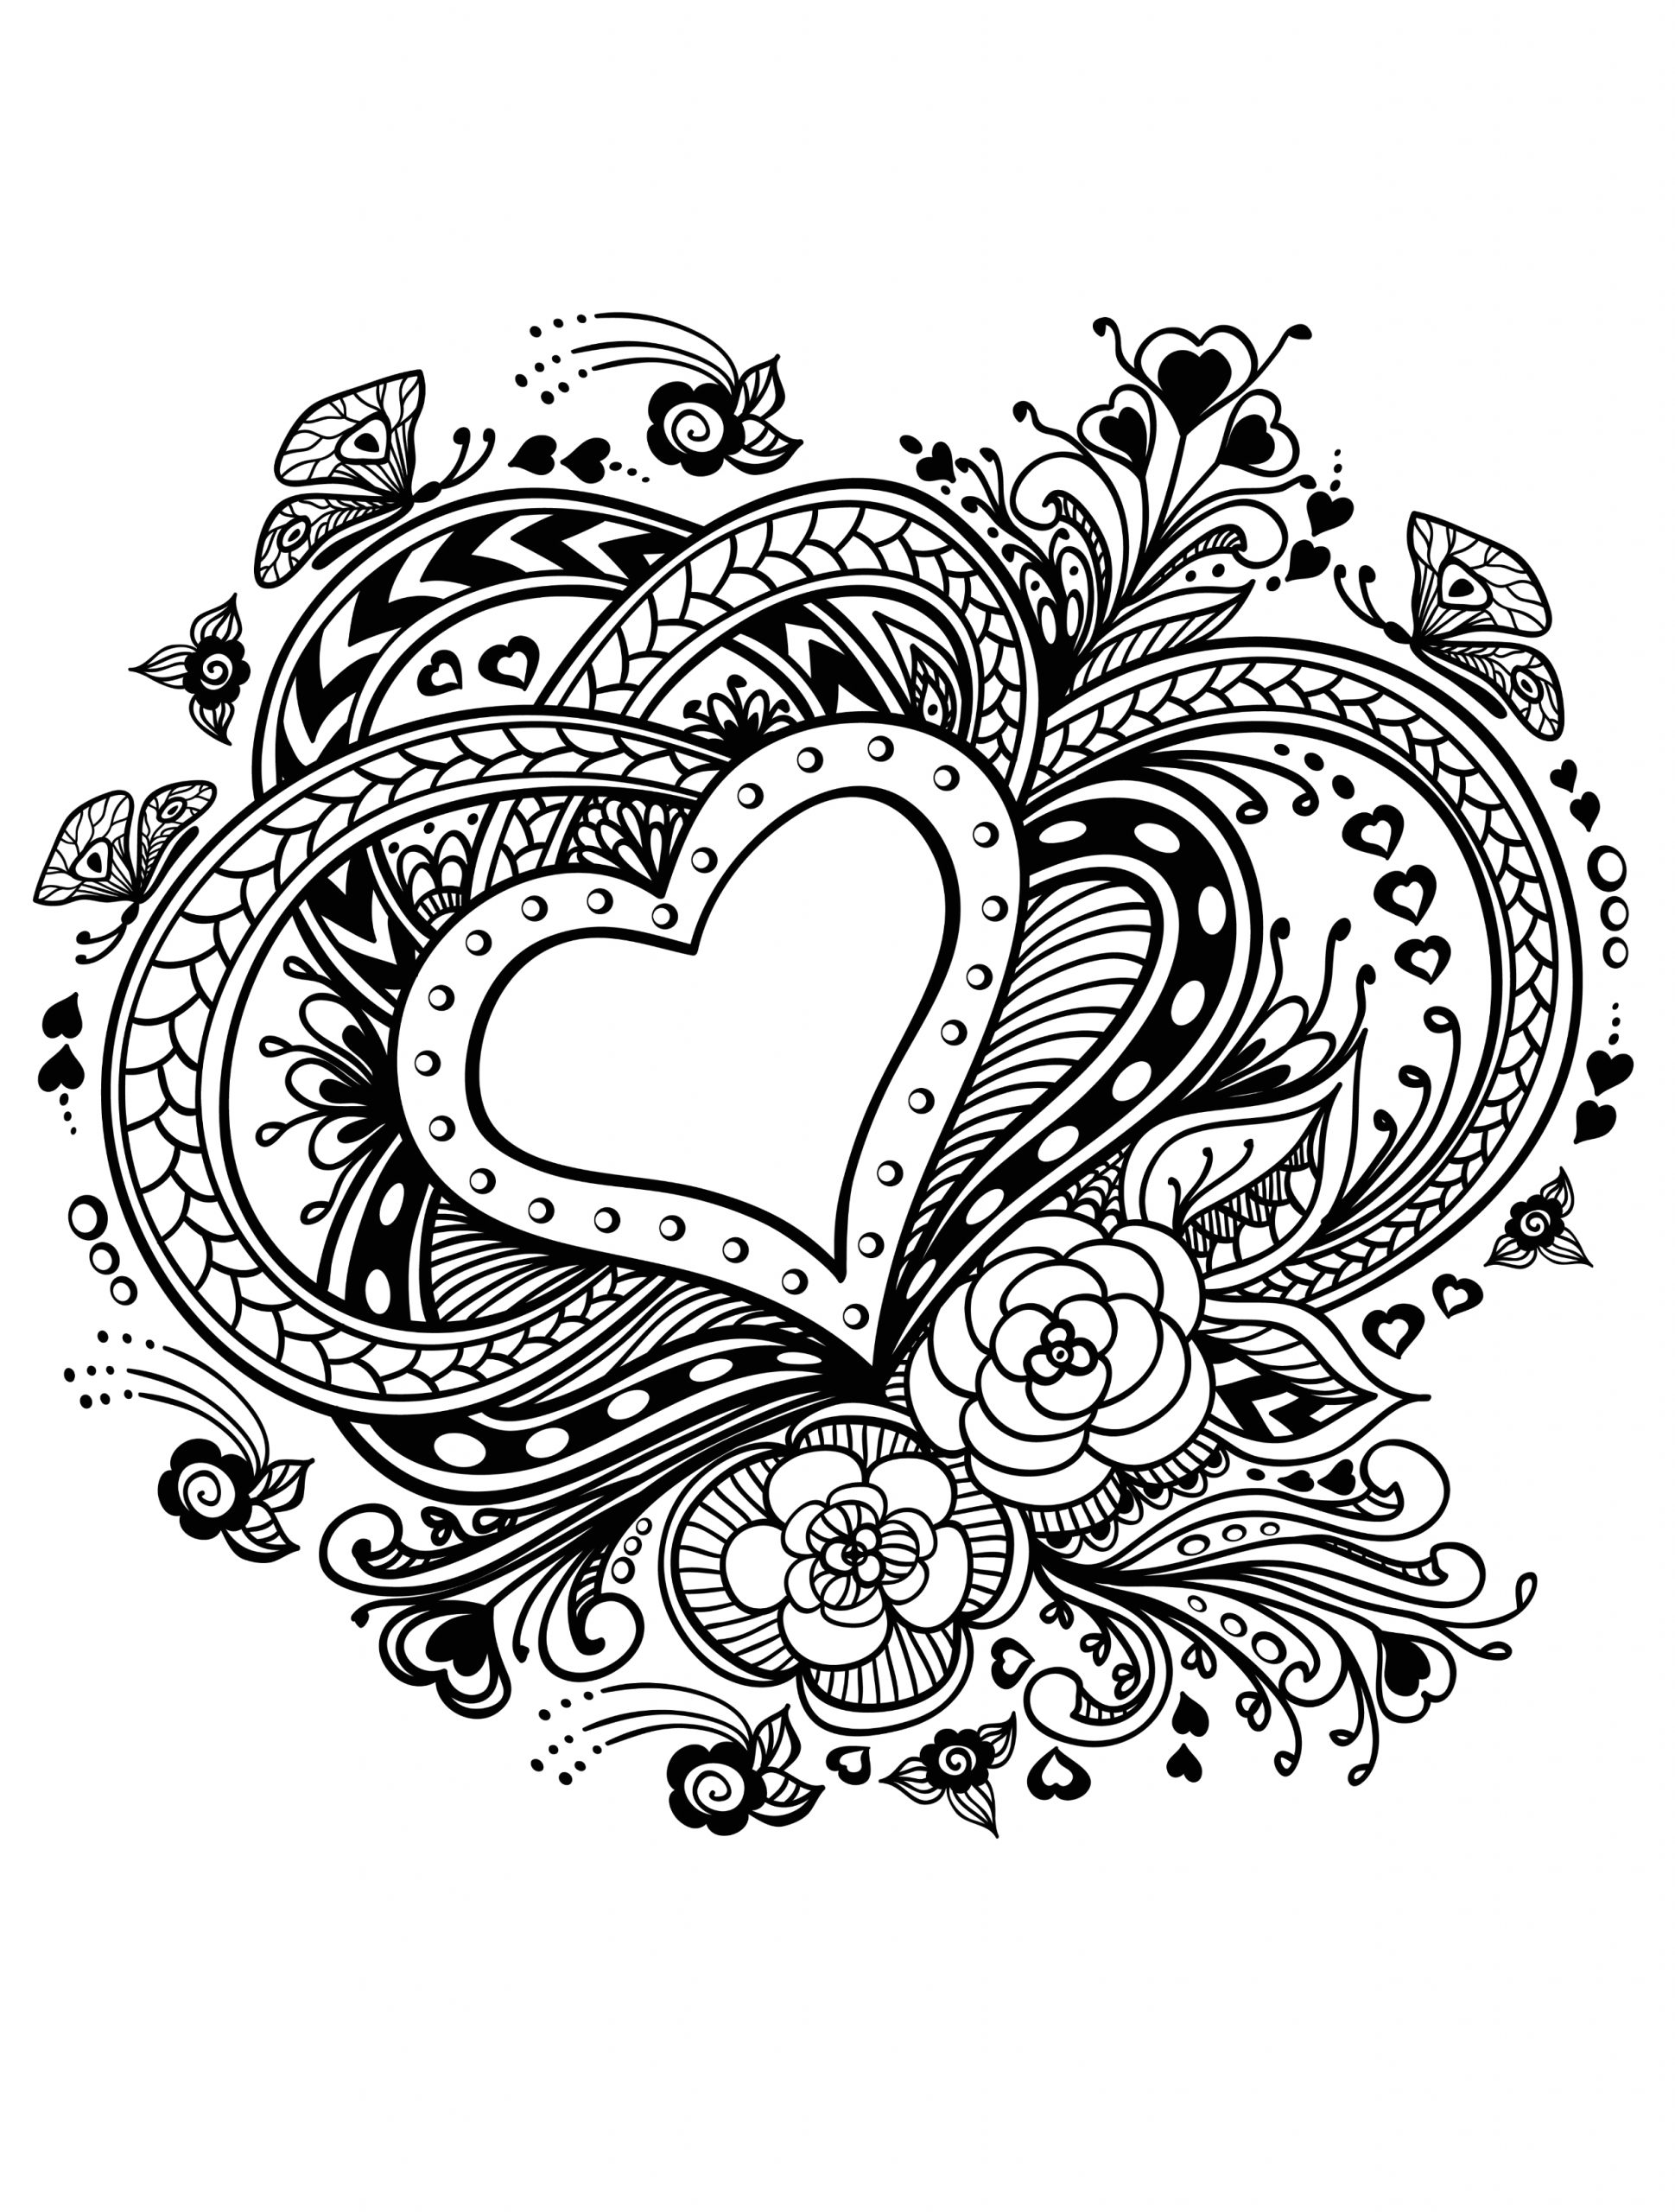 Free Valentines Day Coloring Pages for Adults Valentines Day Coloring Pages for Adults Best Coloring